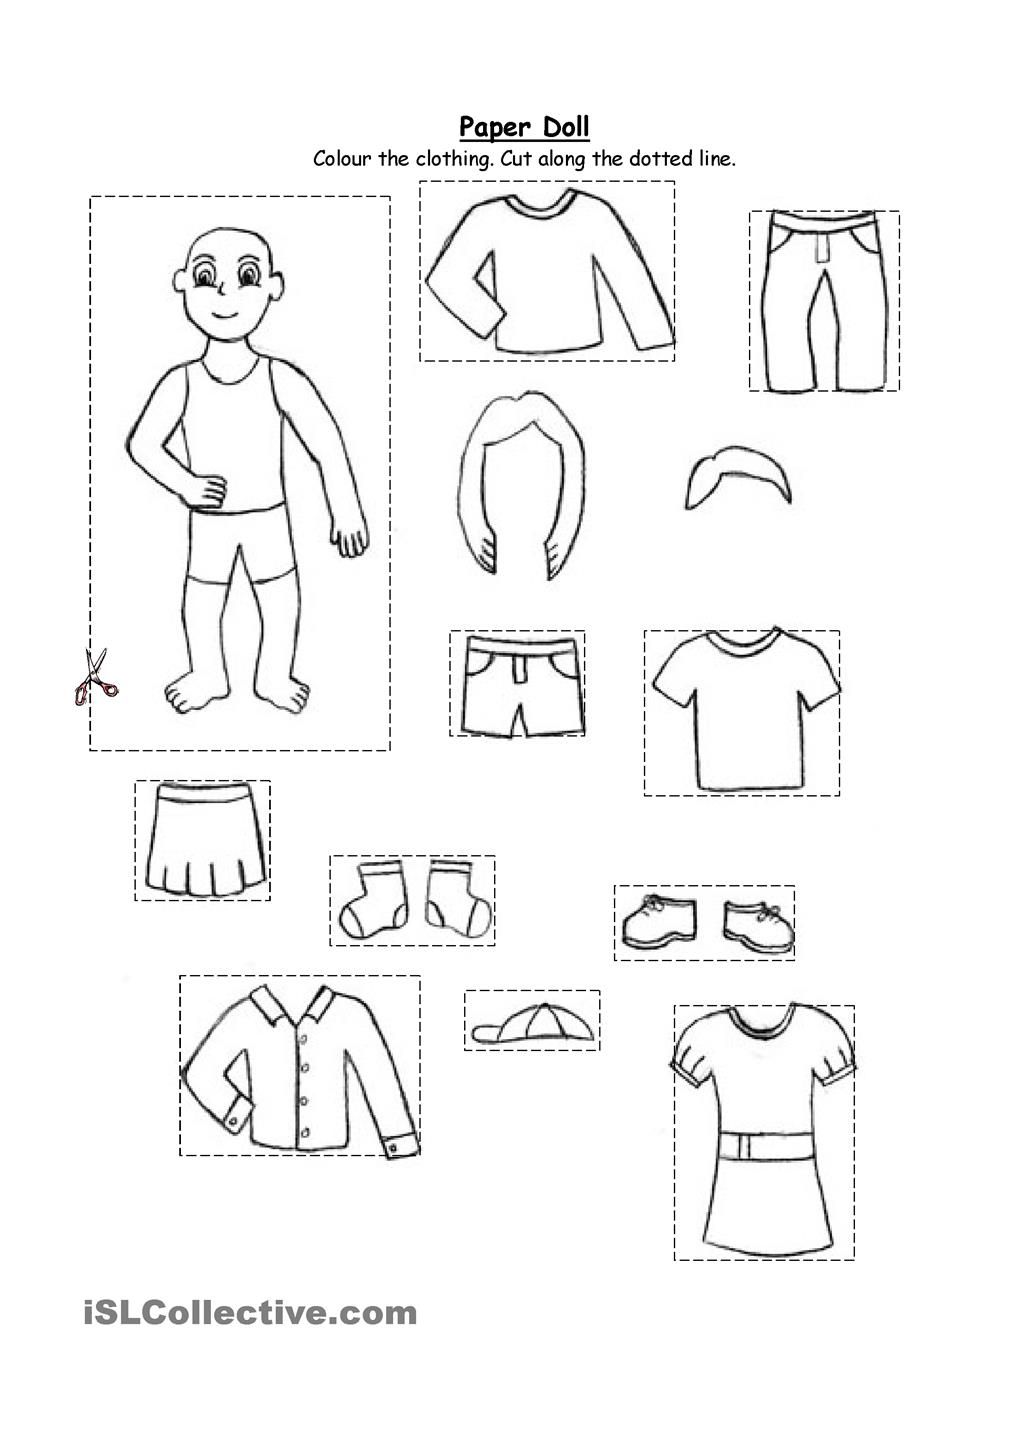 Paper Doll Clothing For Kindergarten And 1st Graders Escuela